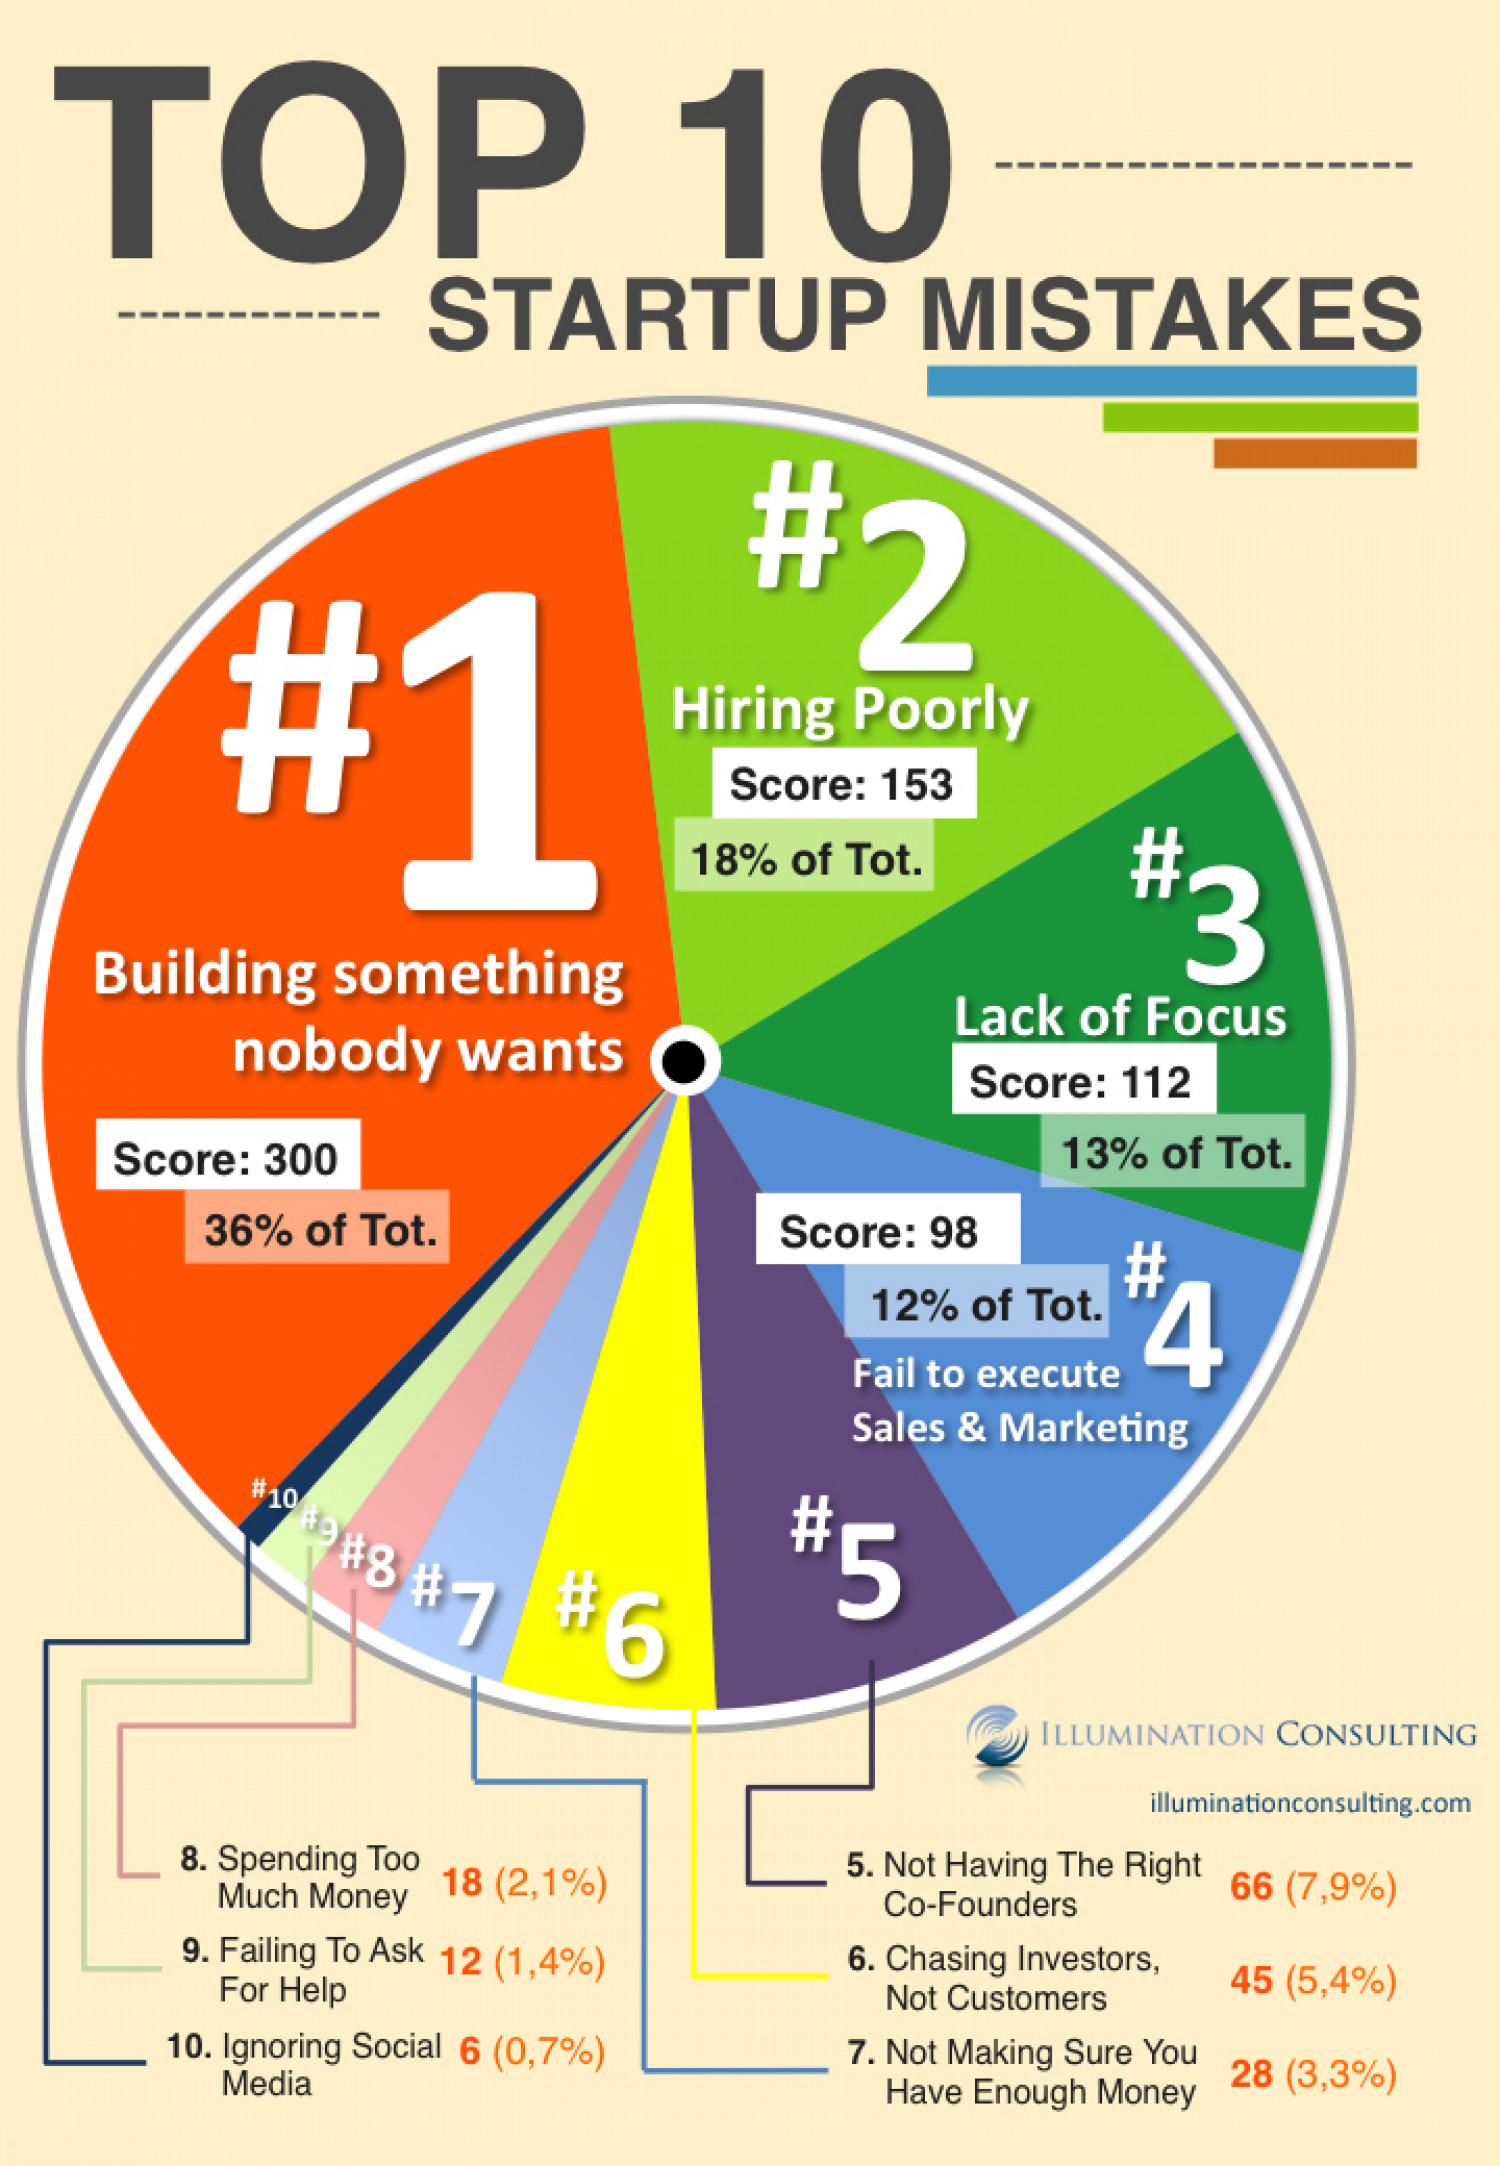 Top 10 Business Startup Mistakes  Infographic